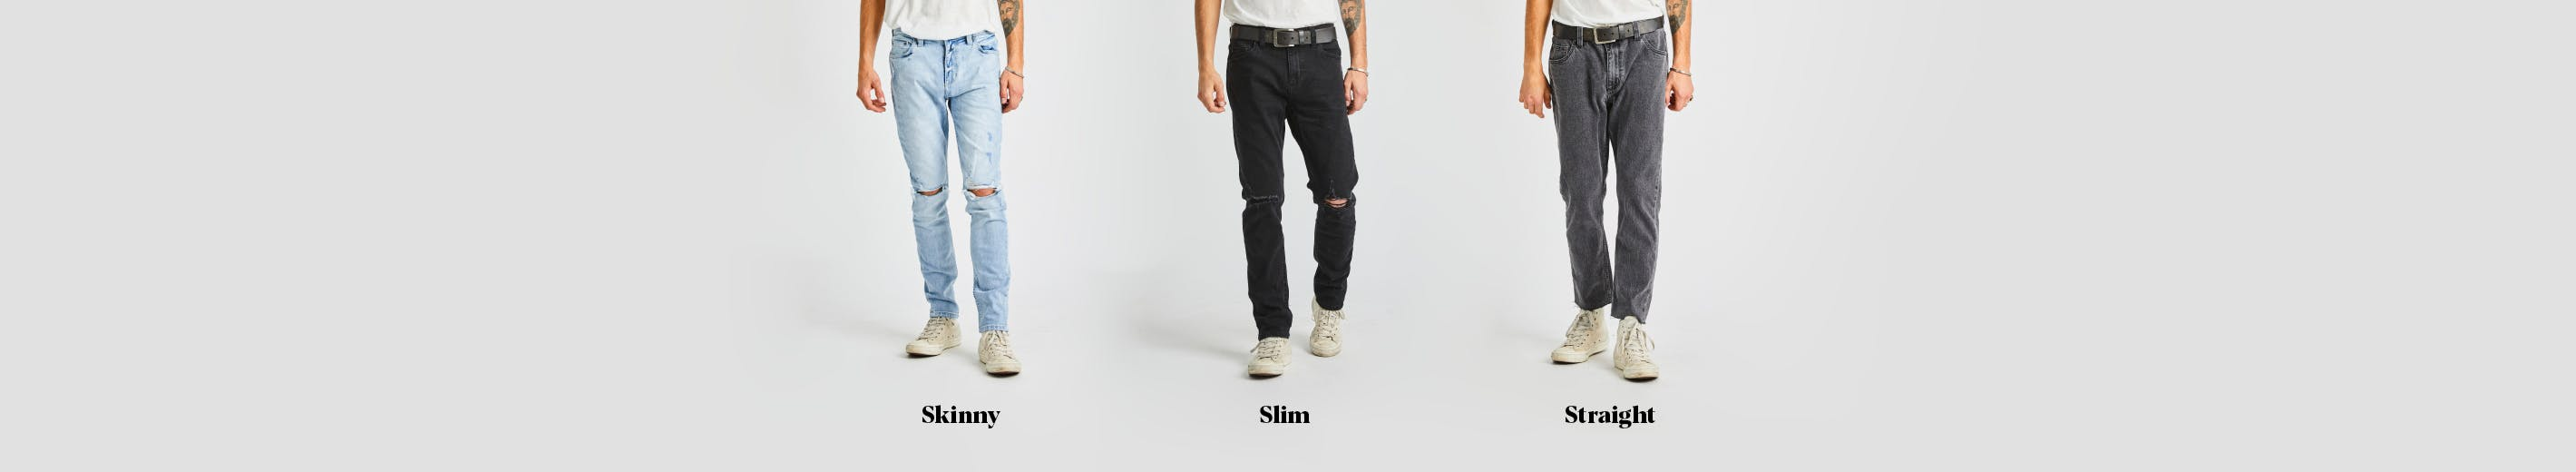 Rolla's Mens Denim Fit Indicator